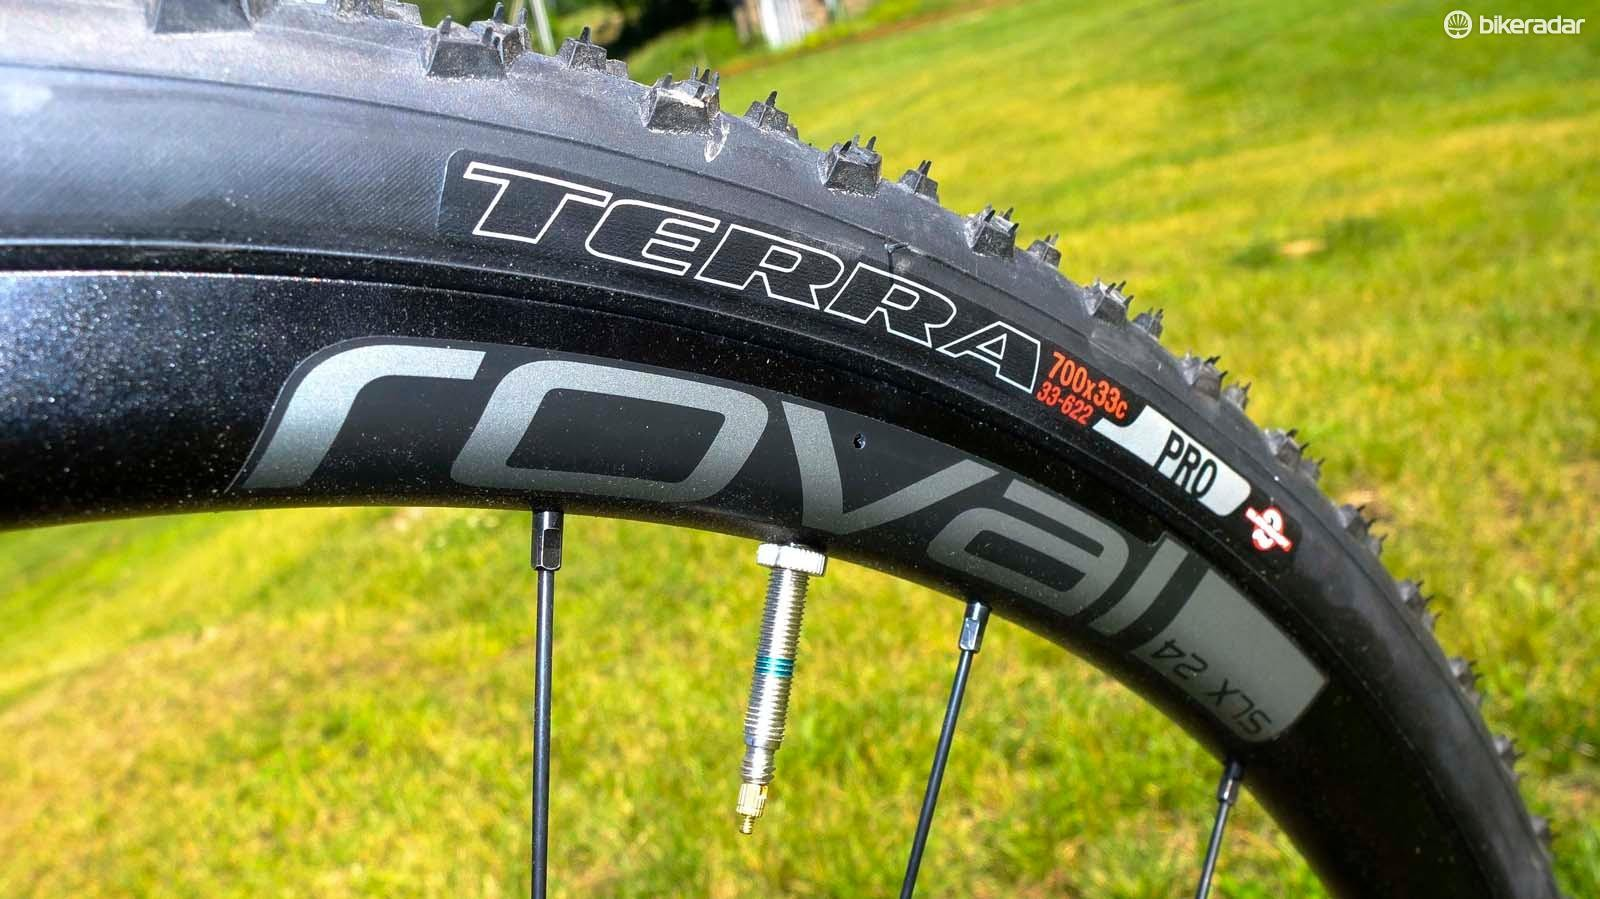 Roval's SLX 24 wheelset with previous Terra Pro mud tyres